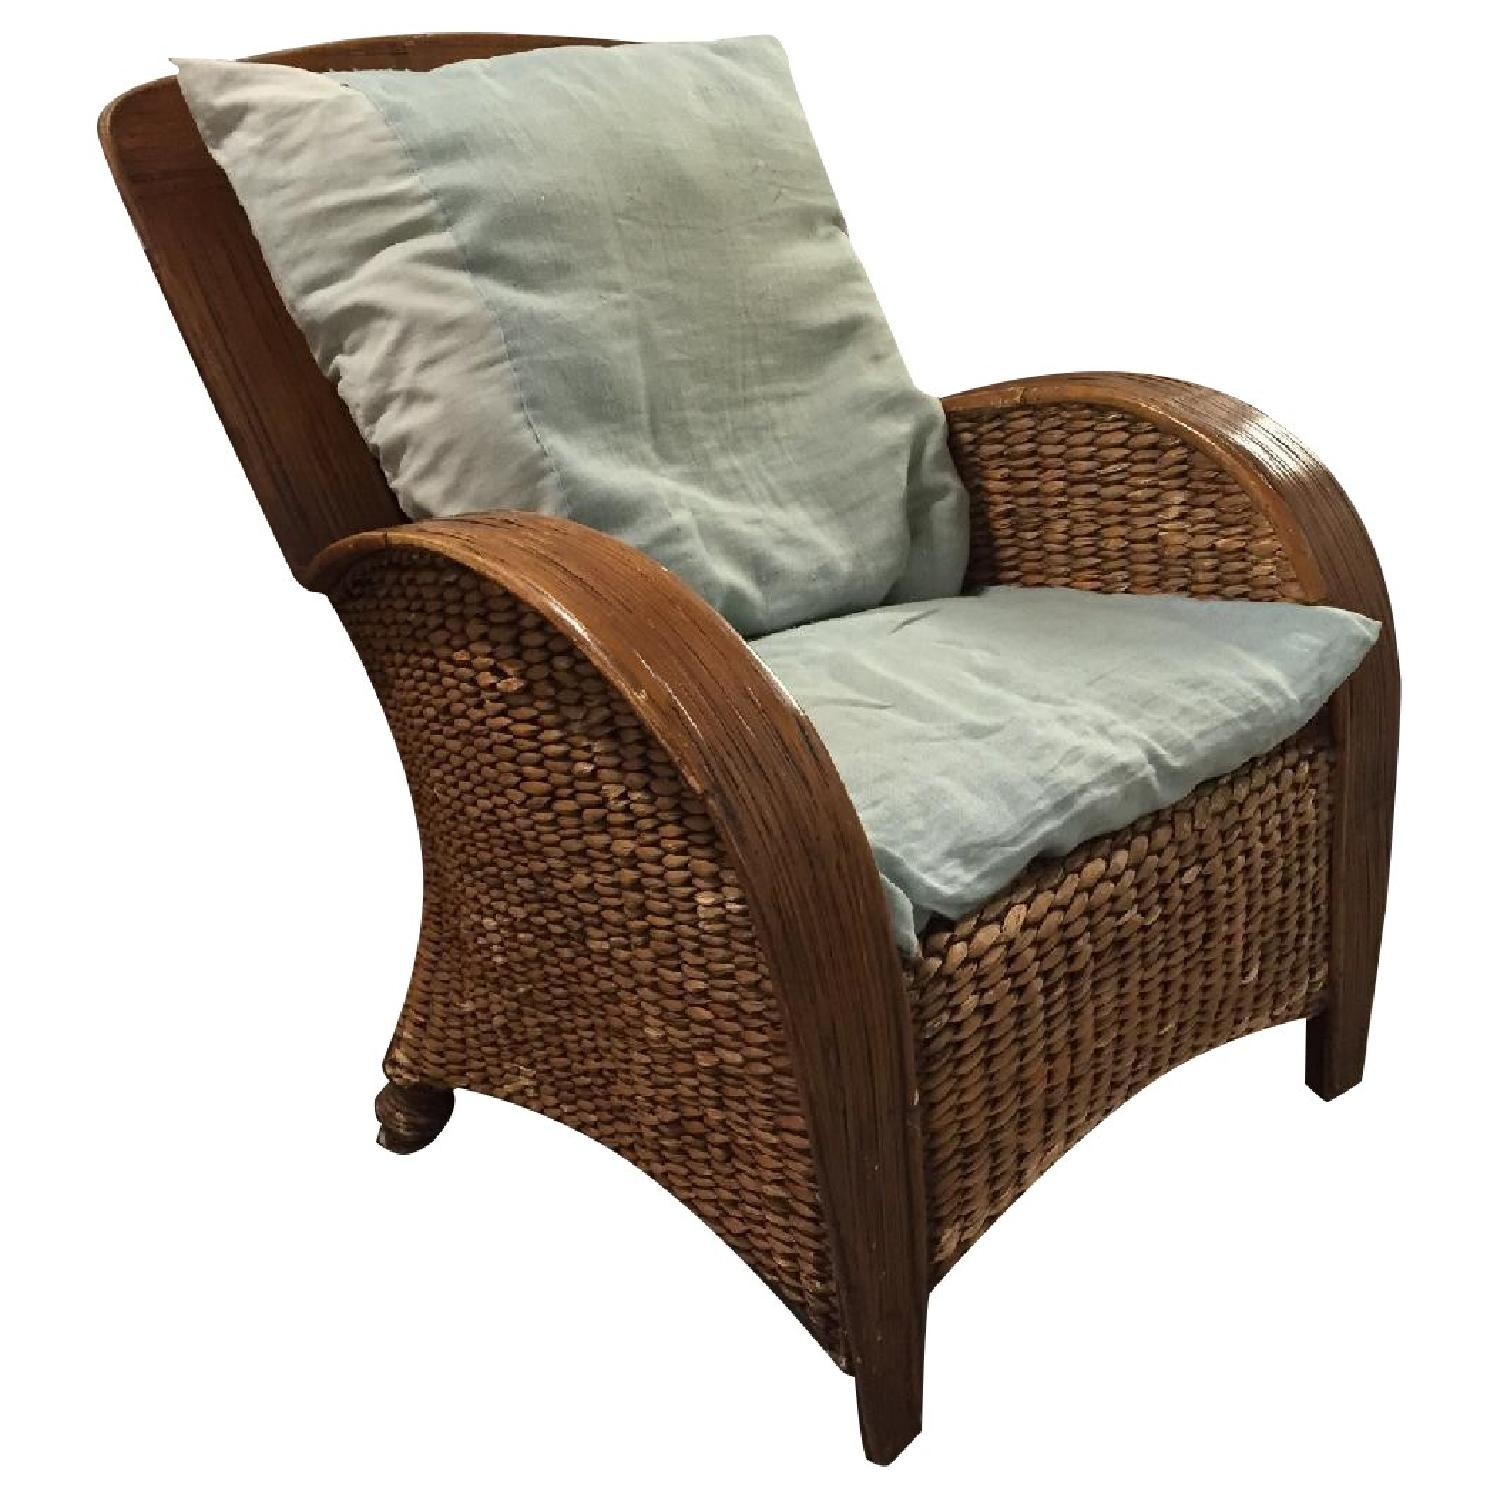 Pier 1 Imports Wicker Chair - image-0